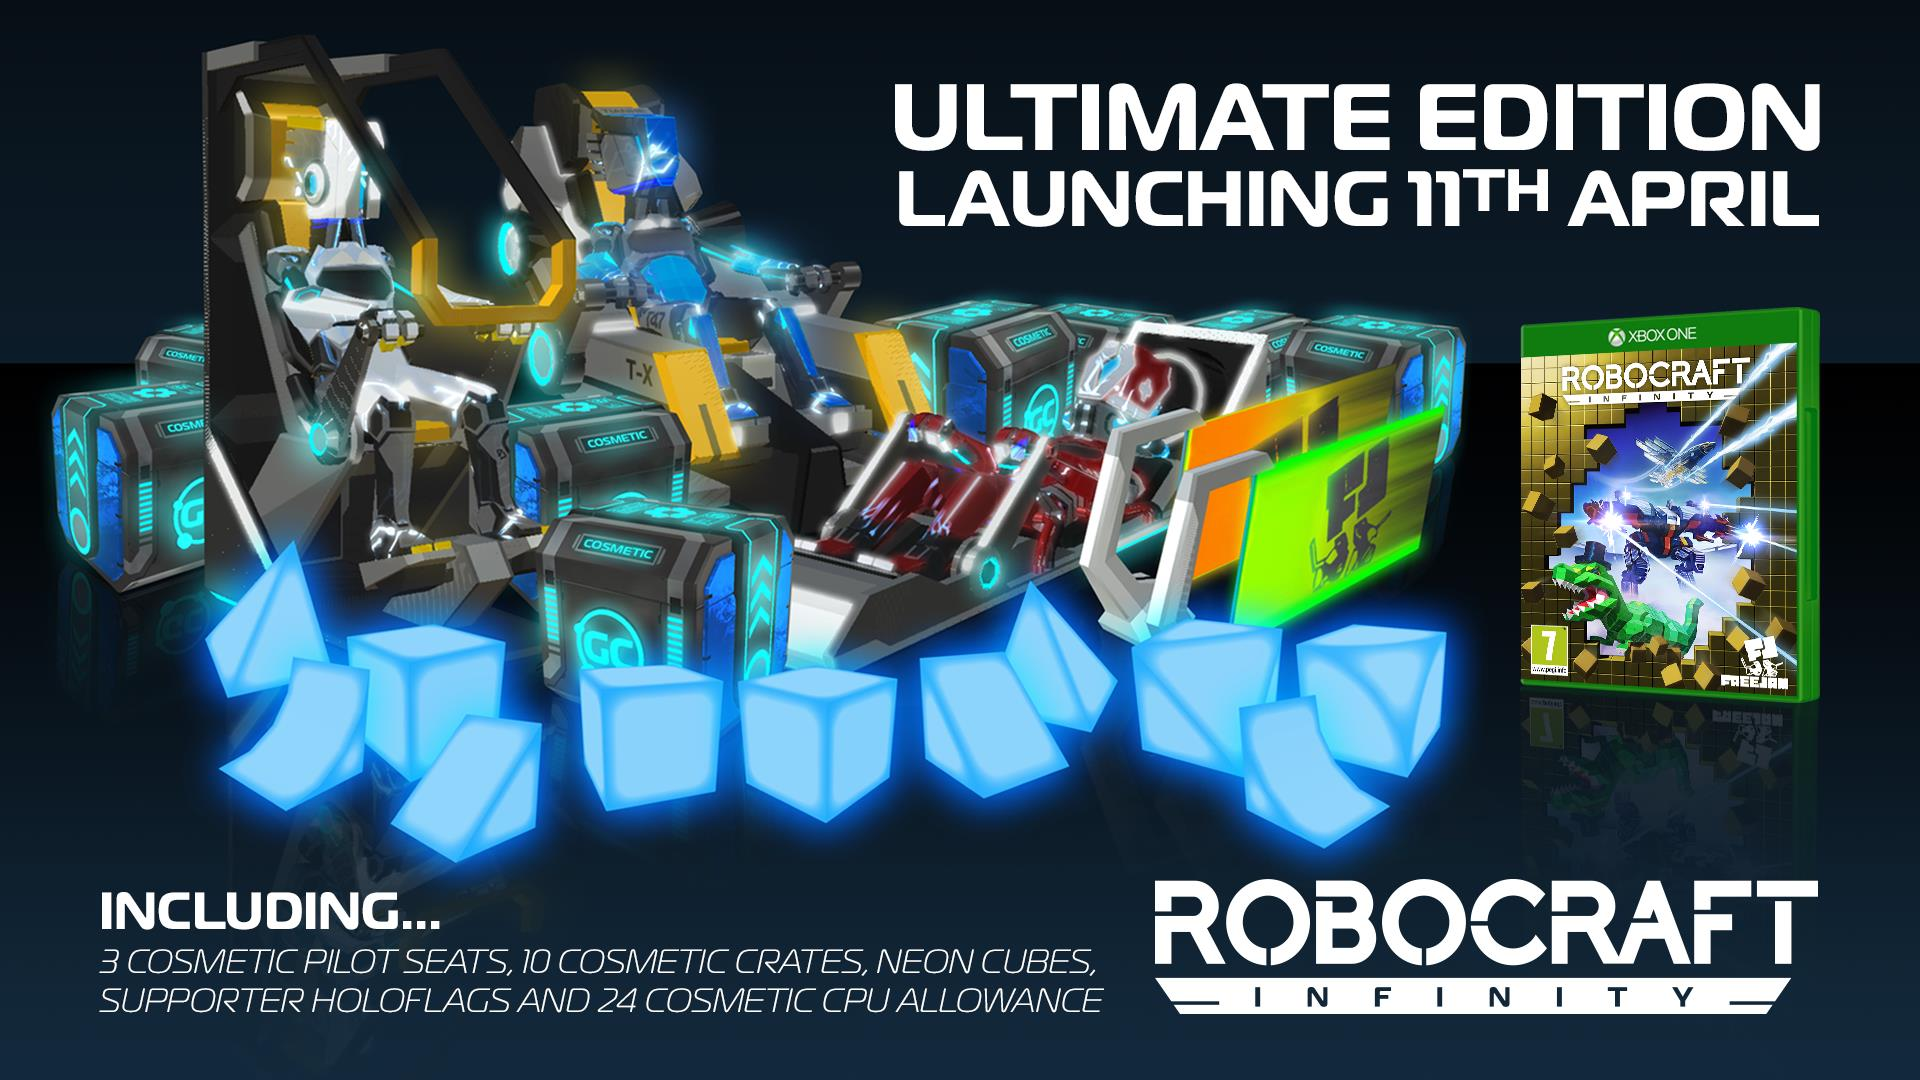 Robocraft Infinity Editions Details and Trailer Released